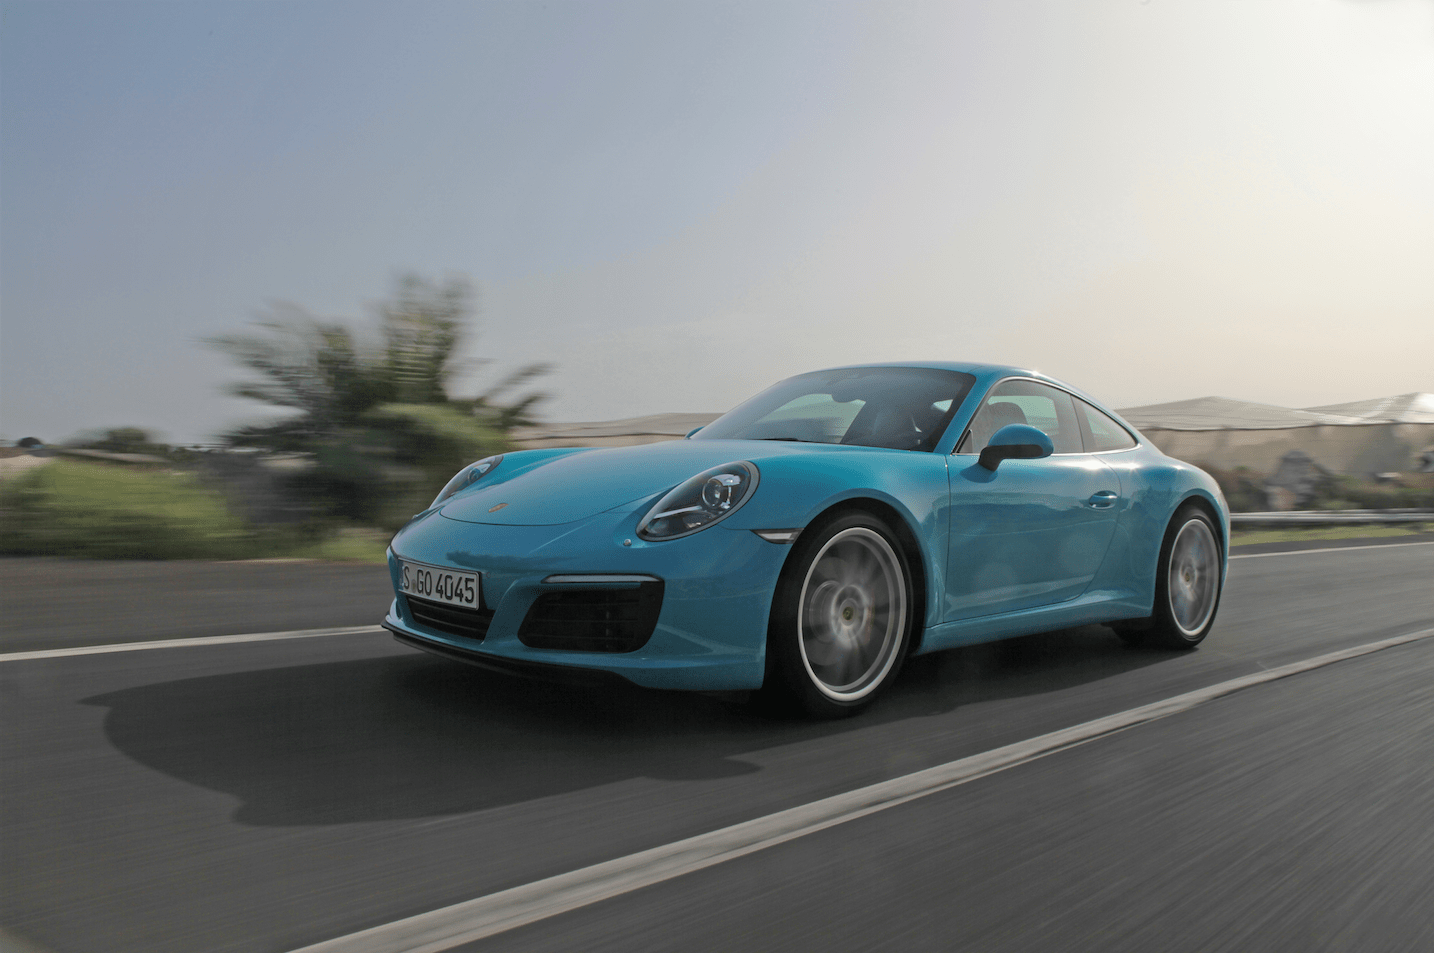 Android Auto Nederland Nieuwe Porsche 911 Wel Apple Carplay Geen Android Auto